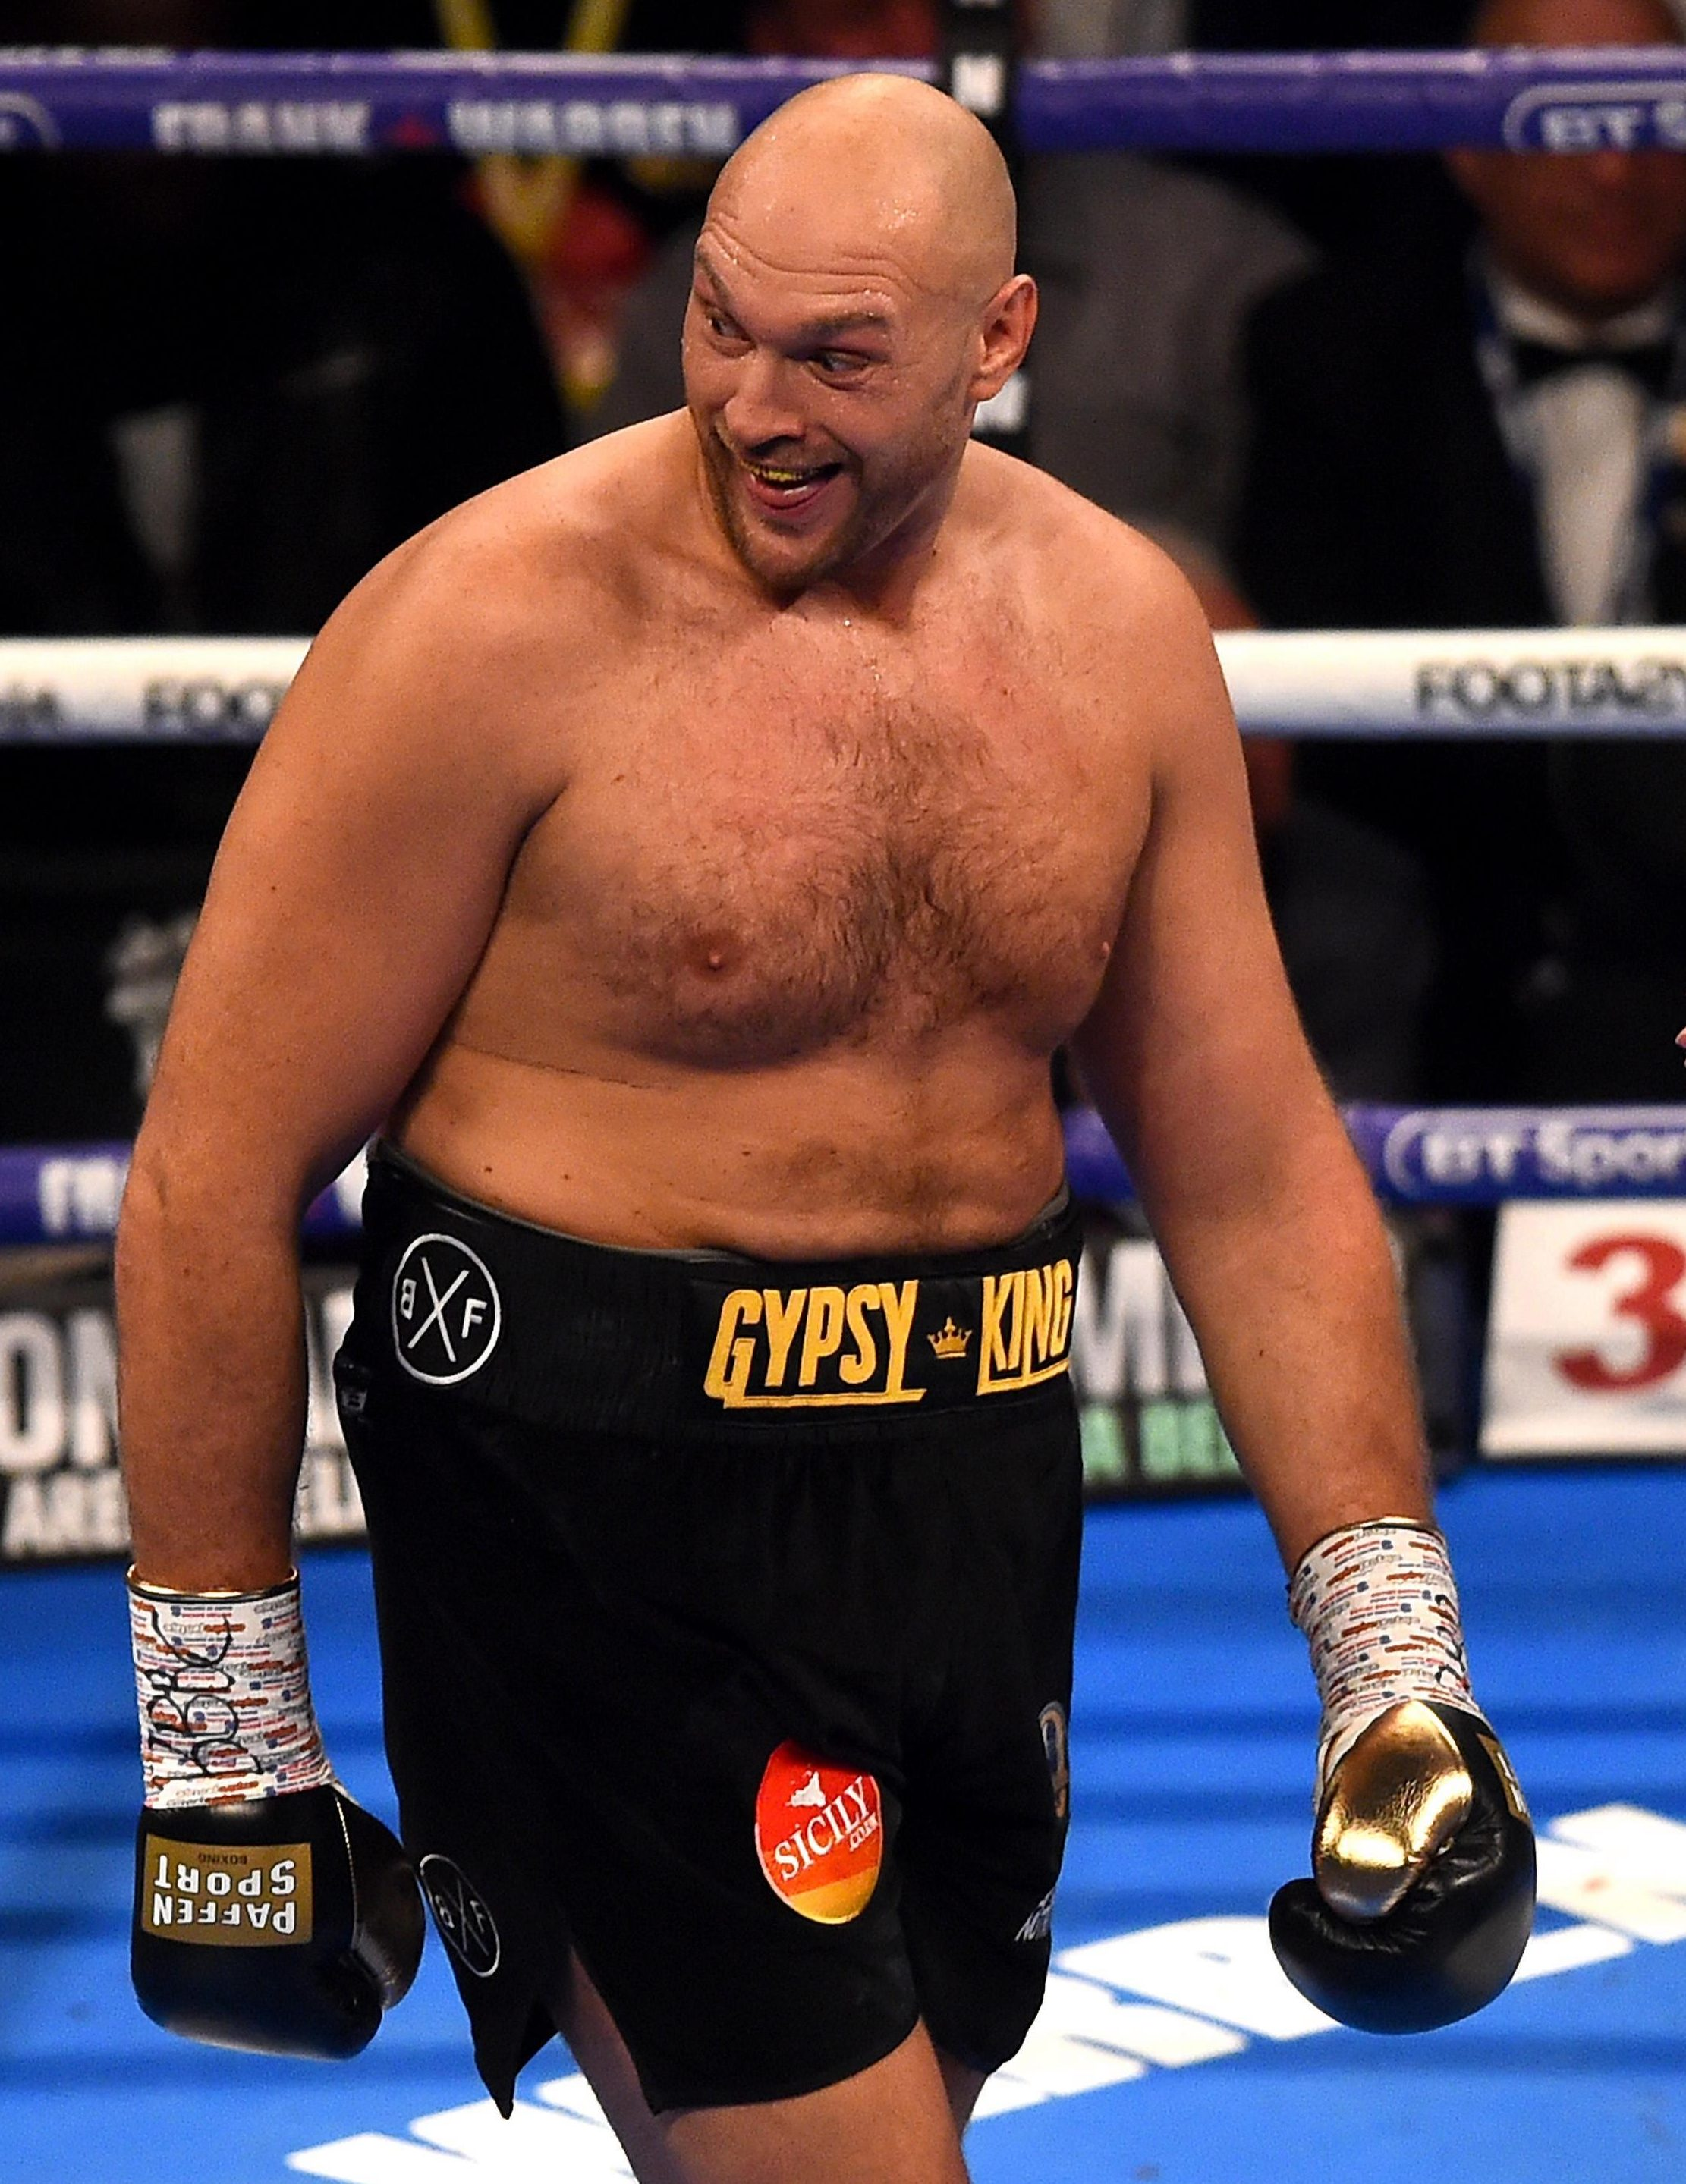 Frank Warren says Tyson Fury still needs to lose more weight, despite him shedding eight-and-a-half stones